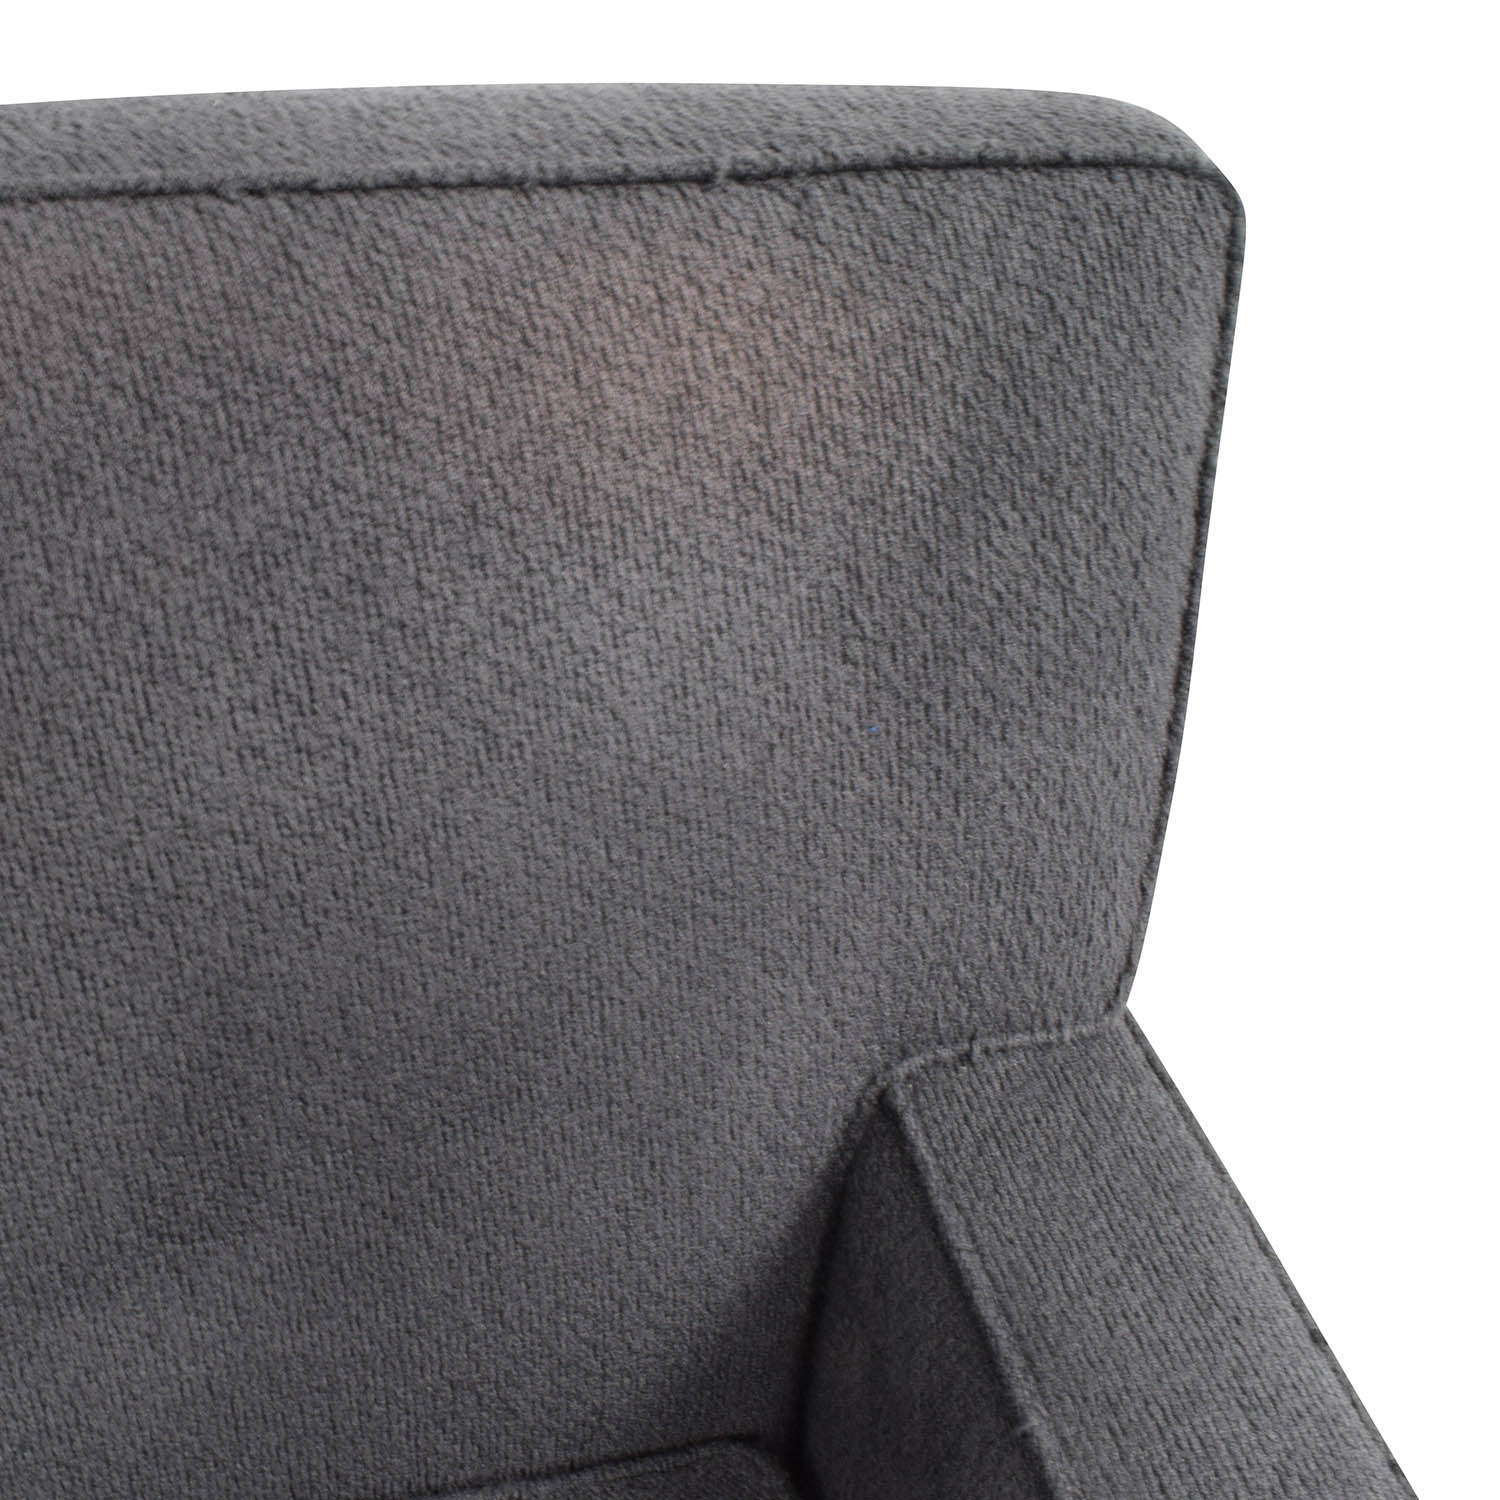 76% OFF Niedermaier Niedermaier Two Piece Surround Sectional